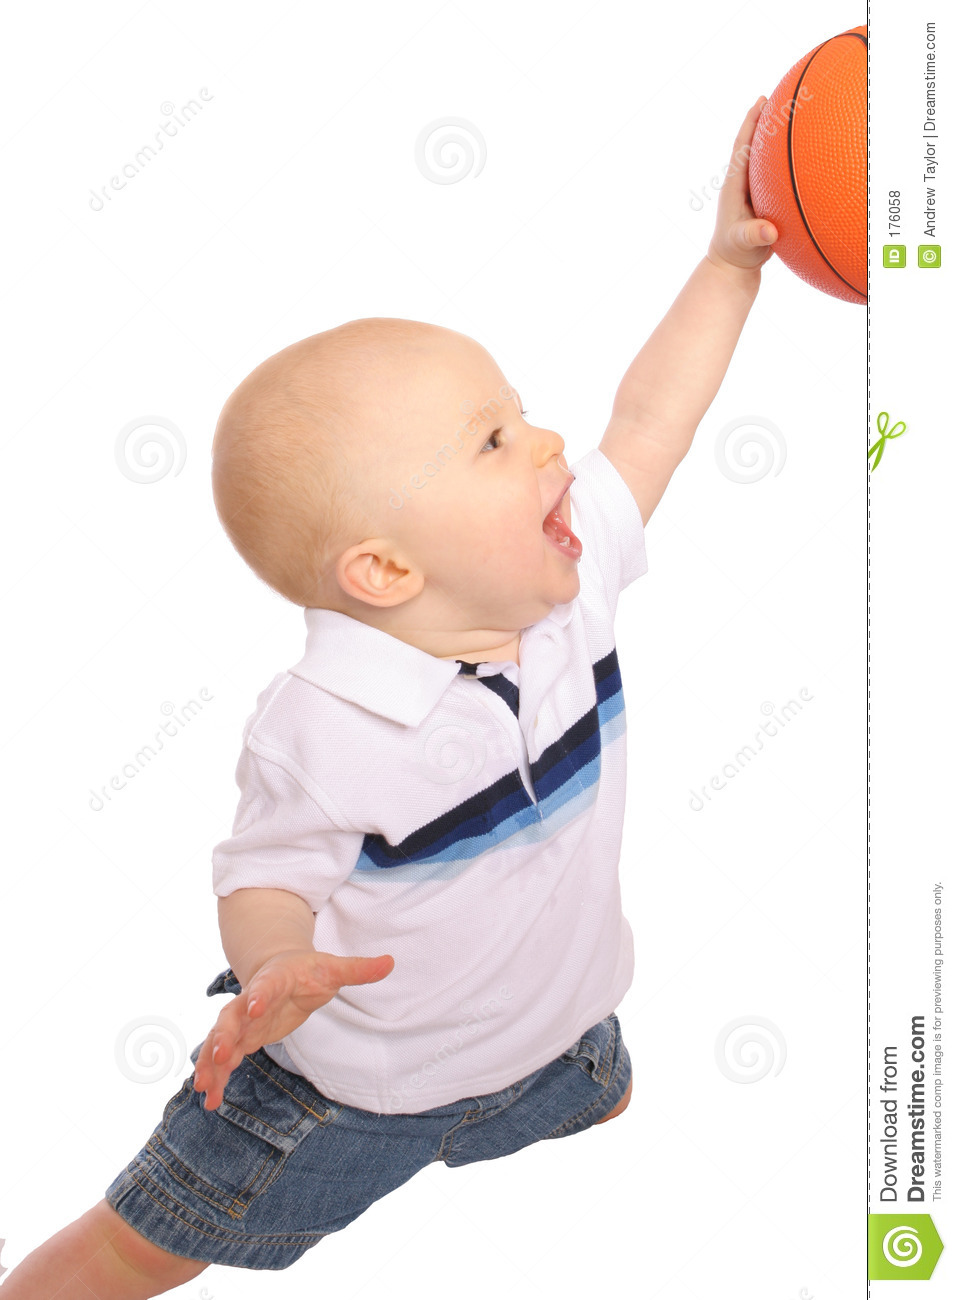 Baby Dunking Royalty Free Stock Photos Image 176058